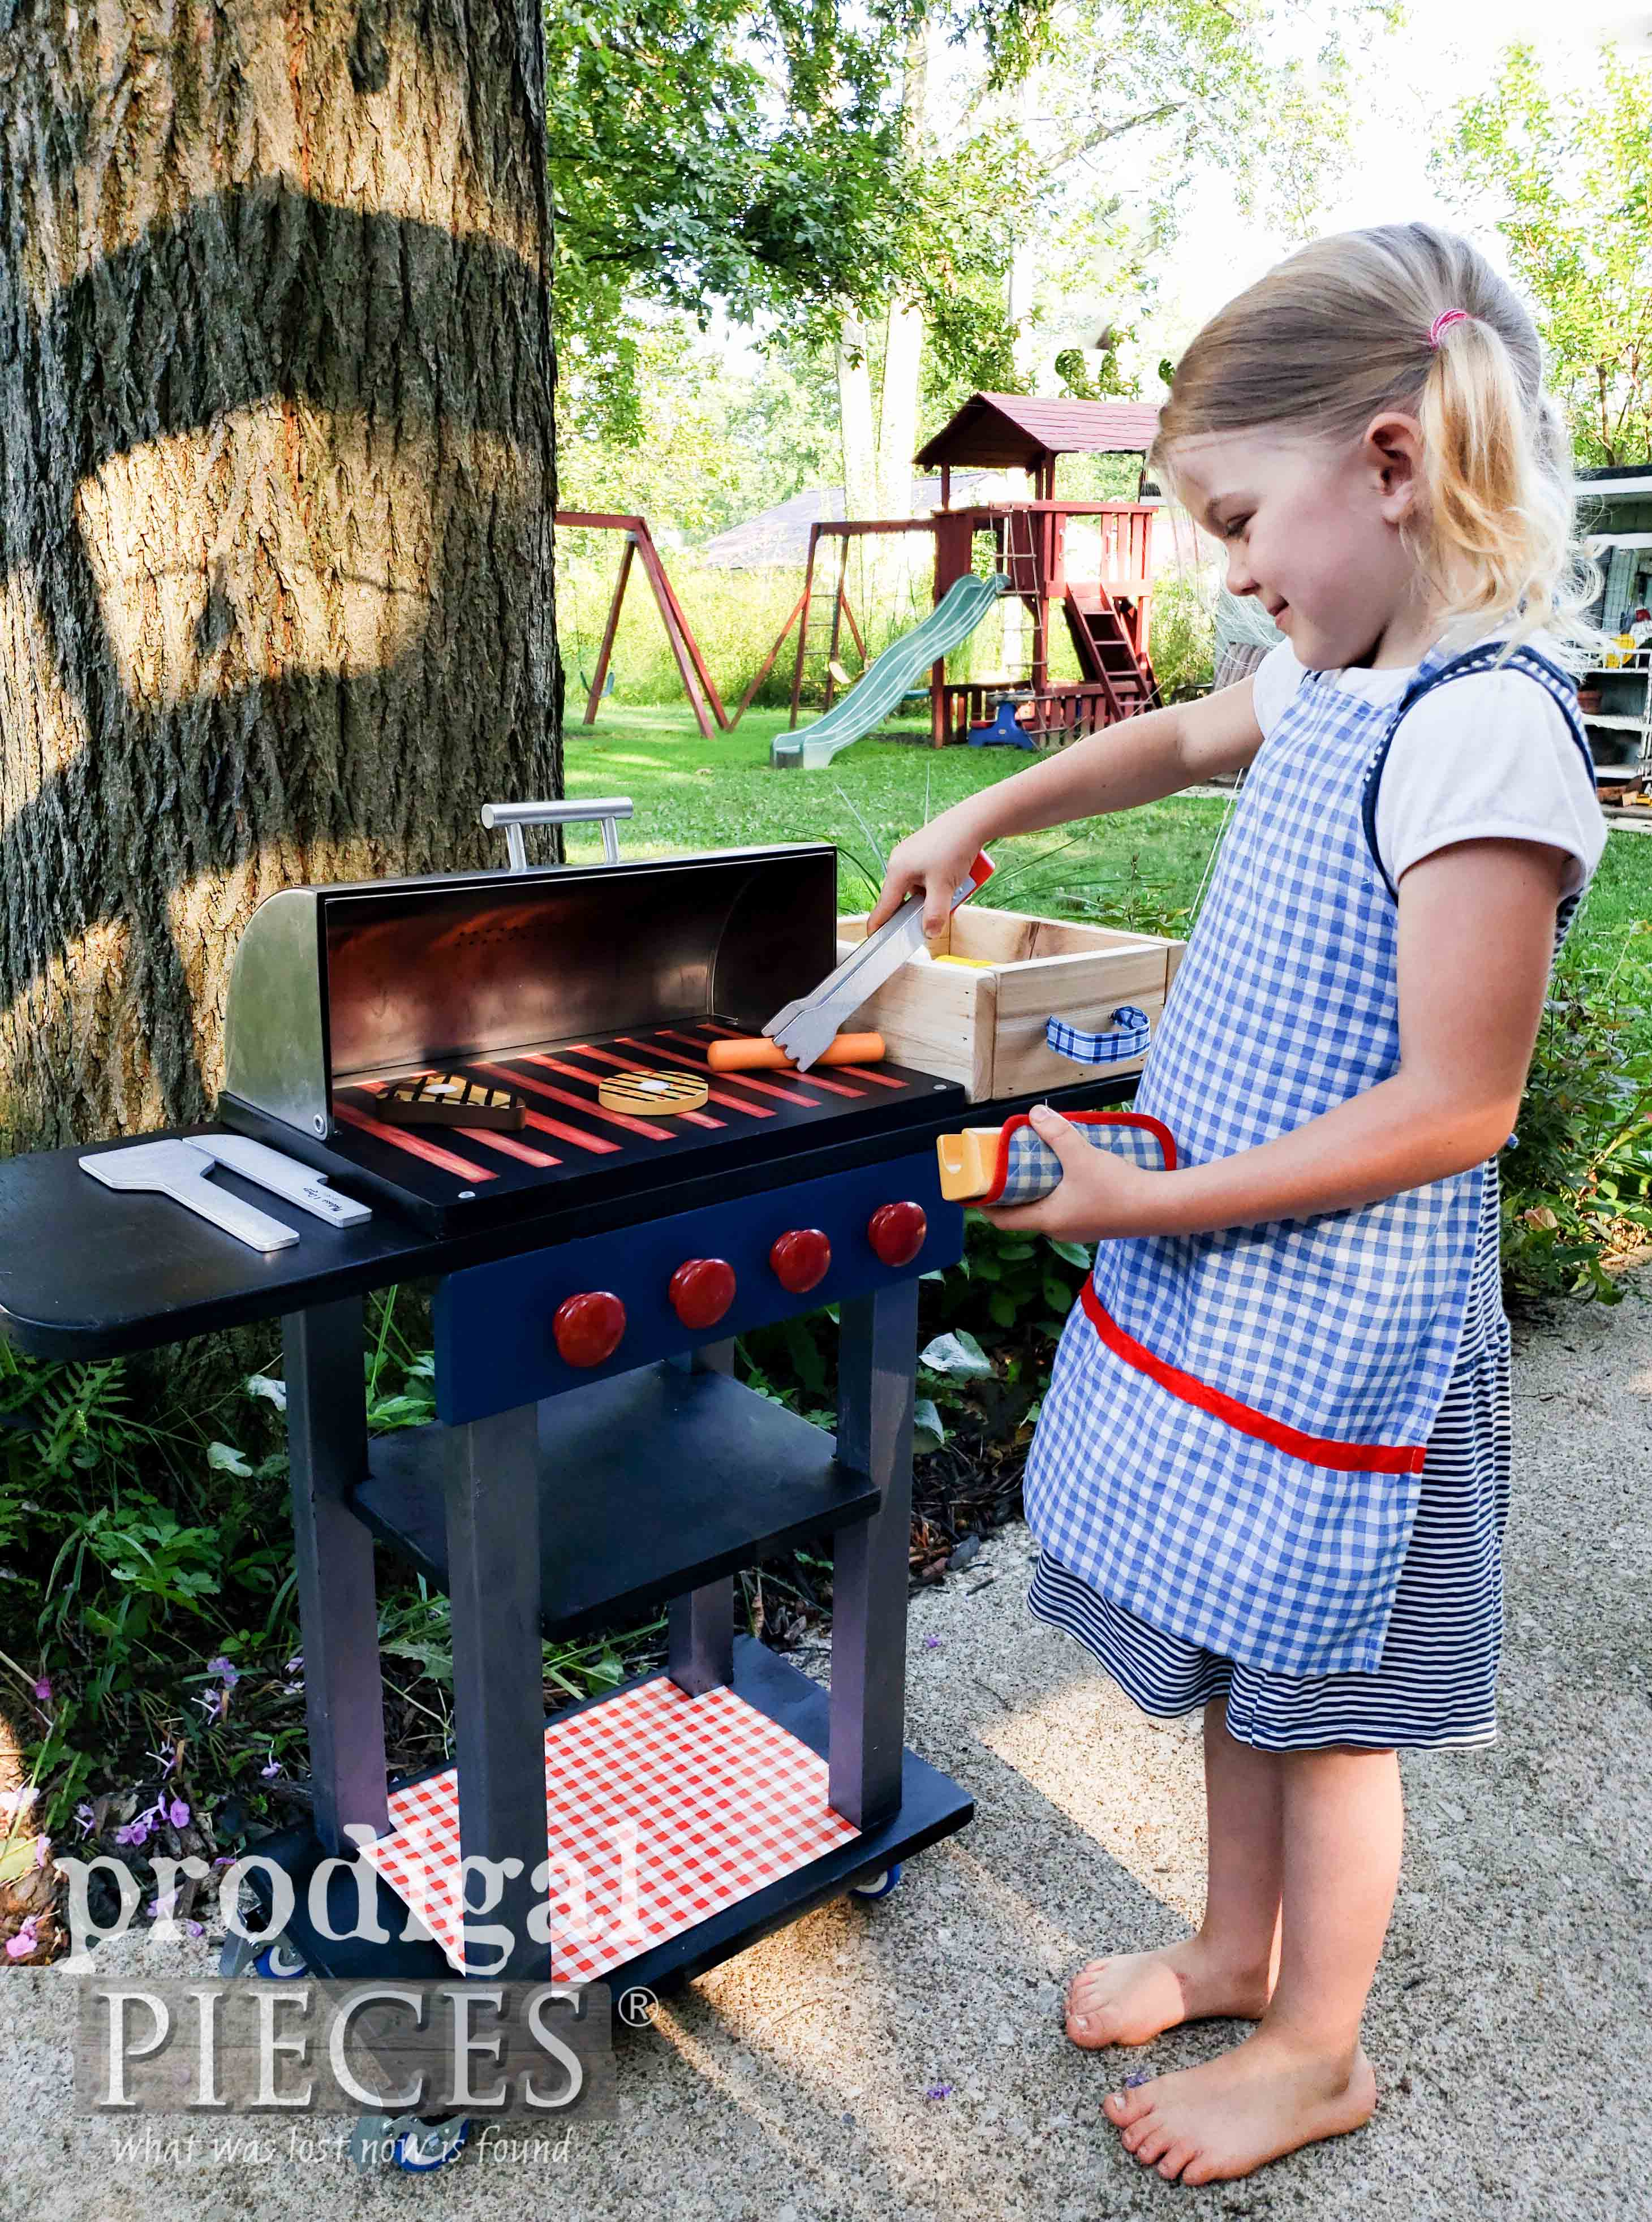 DIY Pretend Play Grill Set made by Larissa of Prodigal Pieces from an Upcycled Bread Box | prodigalpieces.com #prodigalpieces #diy #handmade #kids #toys #pretendplay